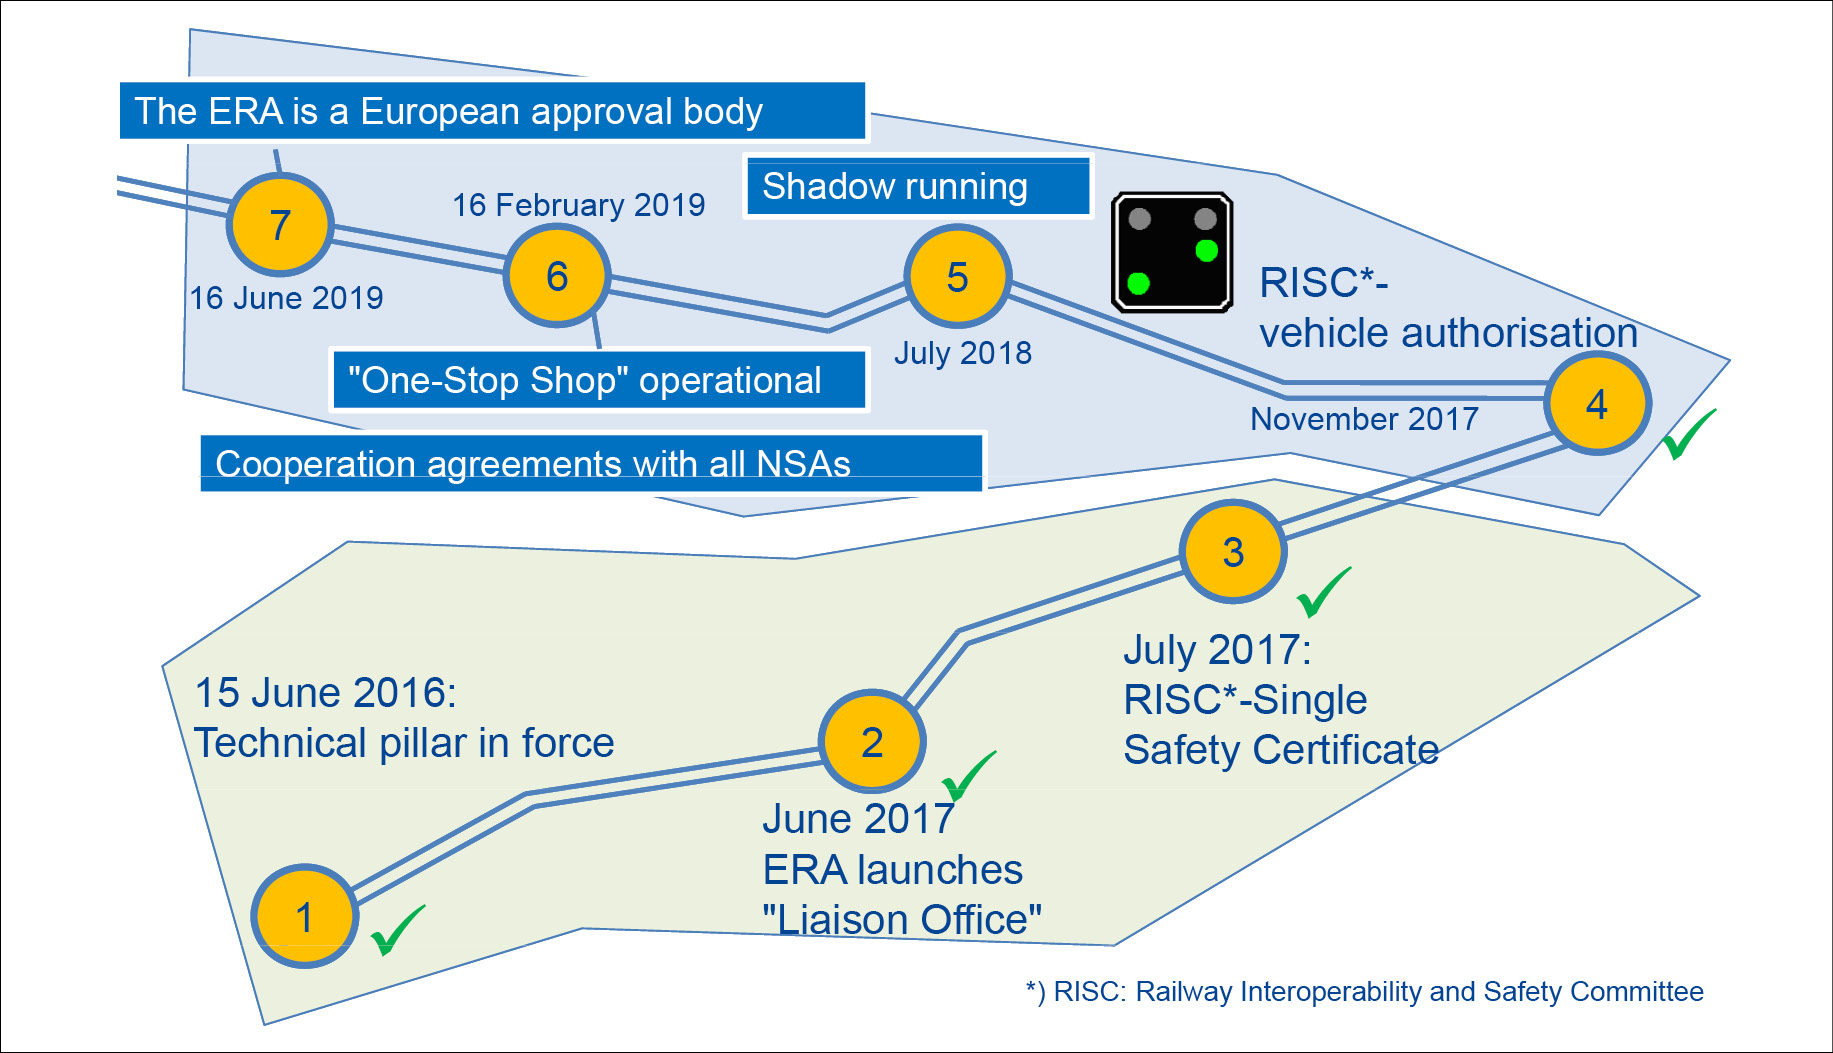 rail vehicle approval process in schematic depiction